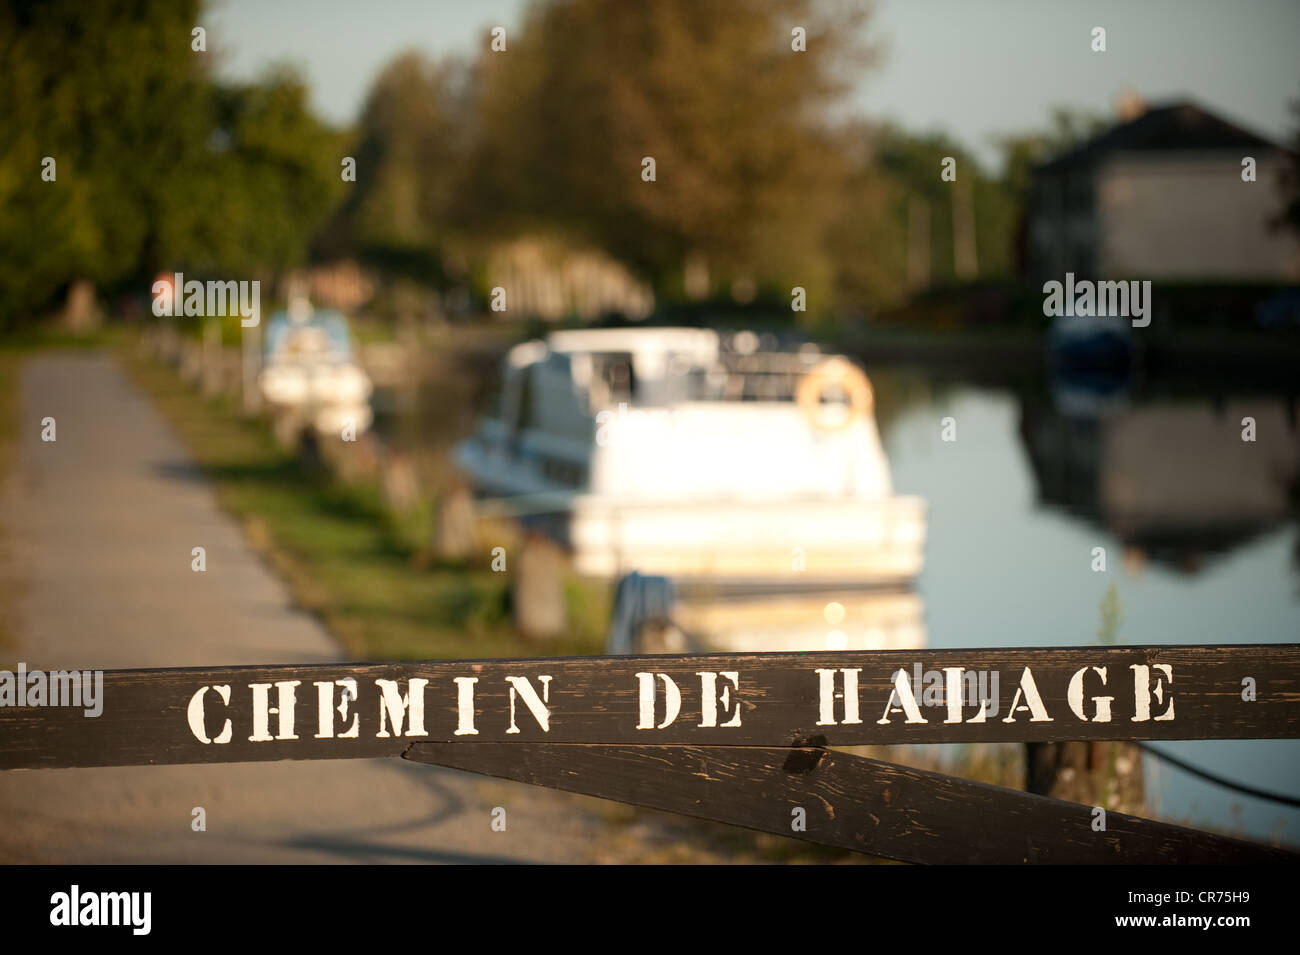 France, Ille et Vilaine, Hede, les Onzes Ecluses (the 11 locks), sign indicating the towpath - Stock Image